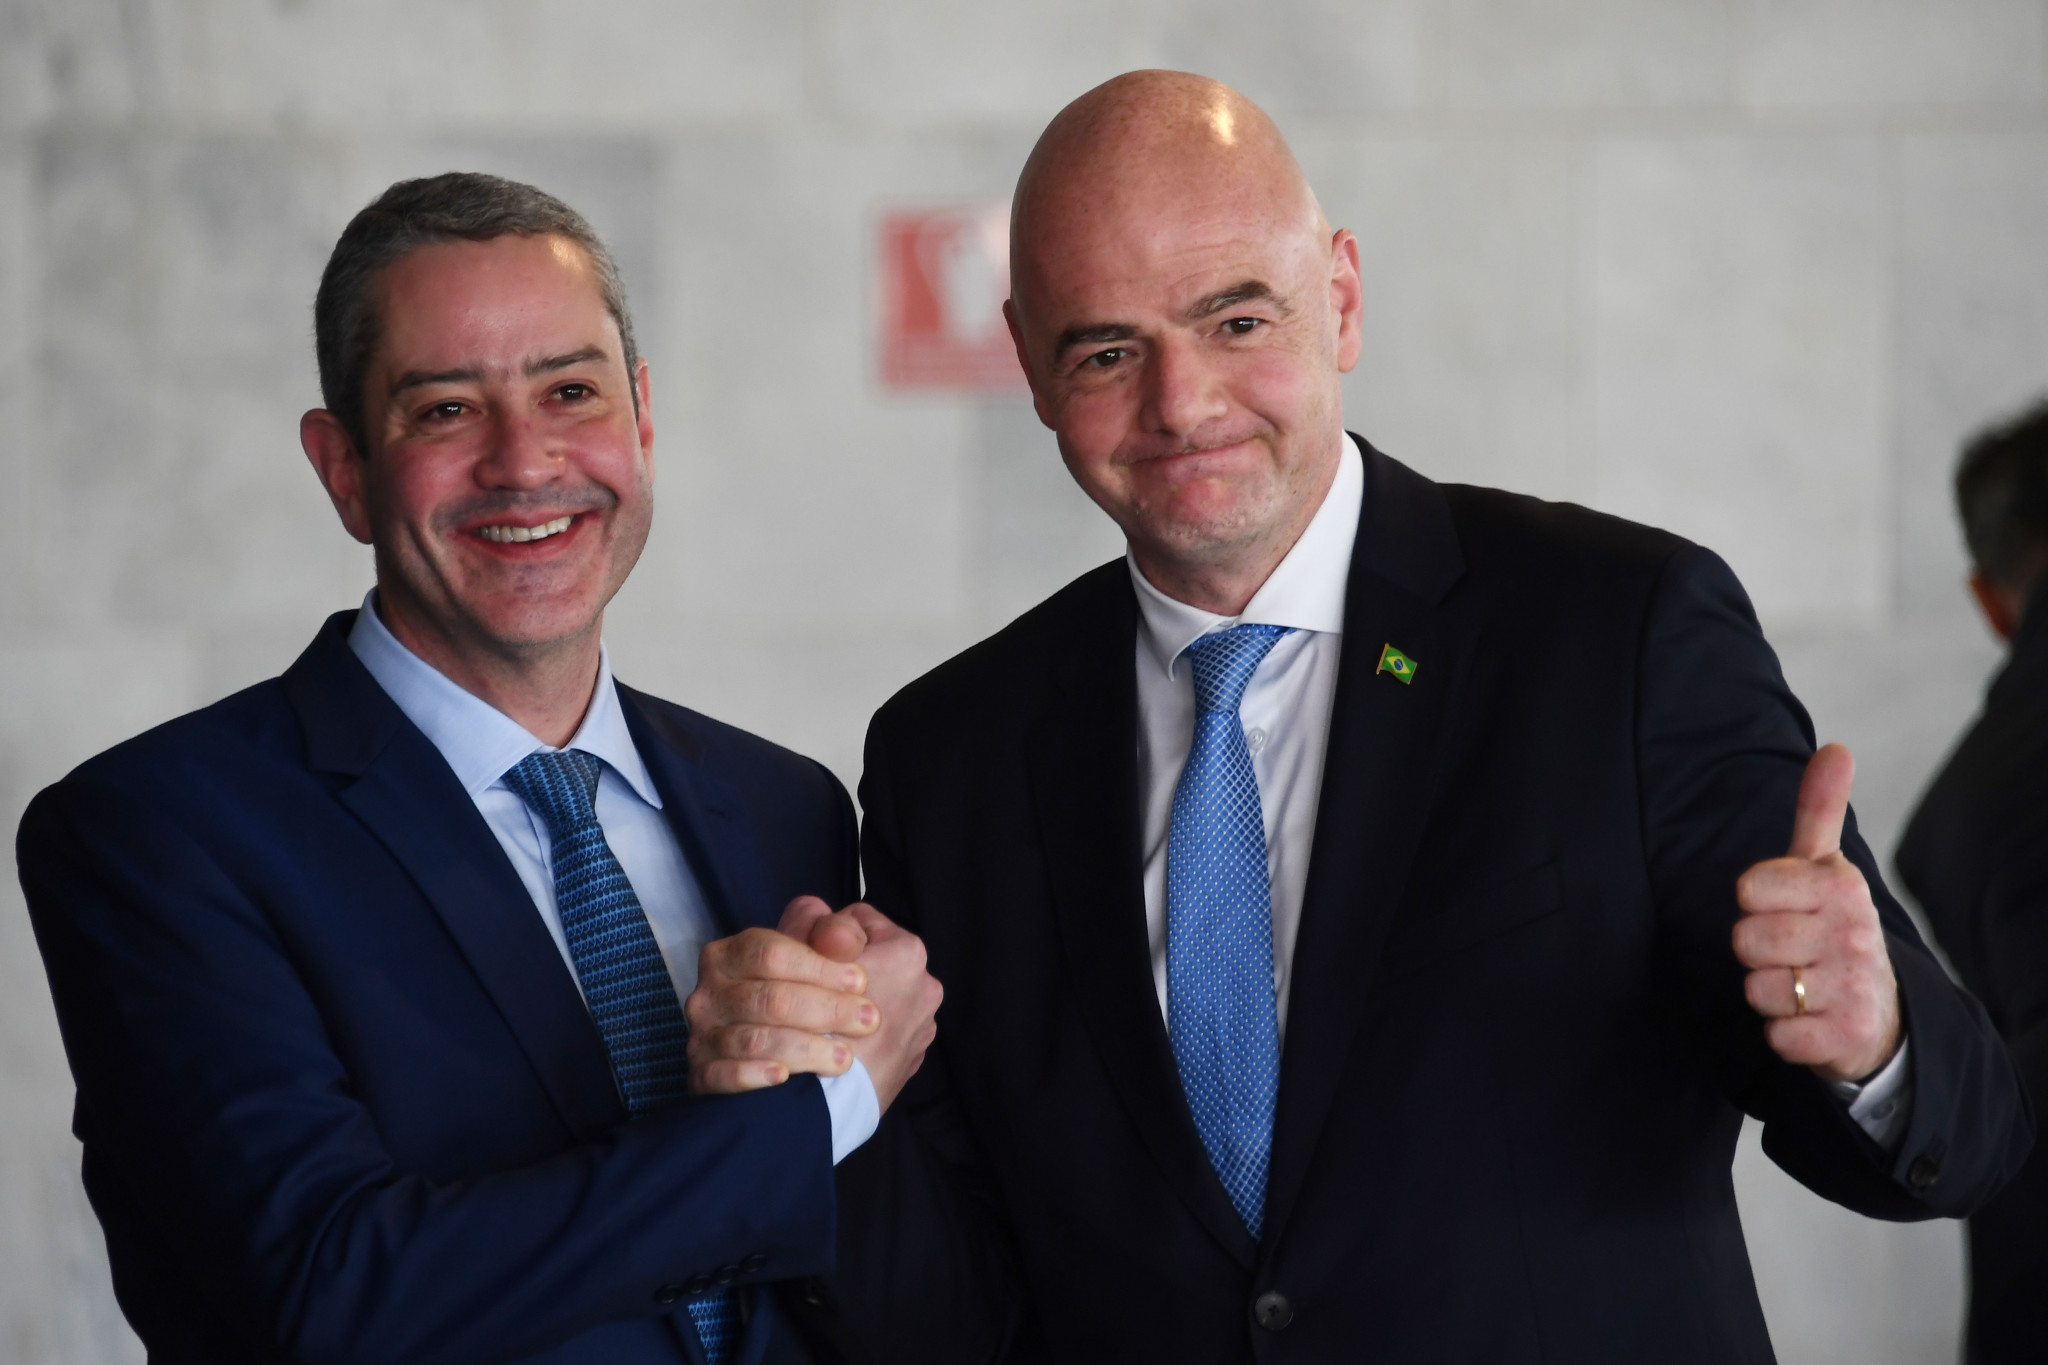 FIFA President Gianni Infantino, right, was present at the inauguration of Rogério Caboclo, left, as CBF head ©Getty Images